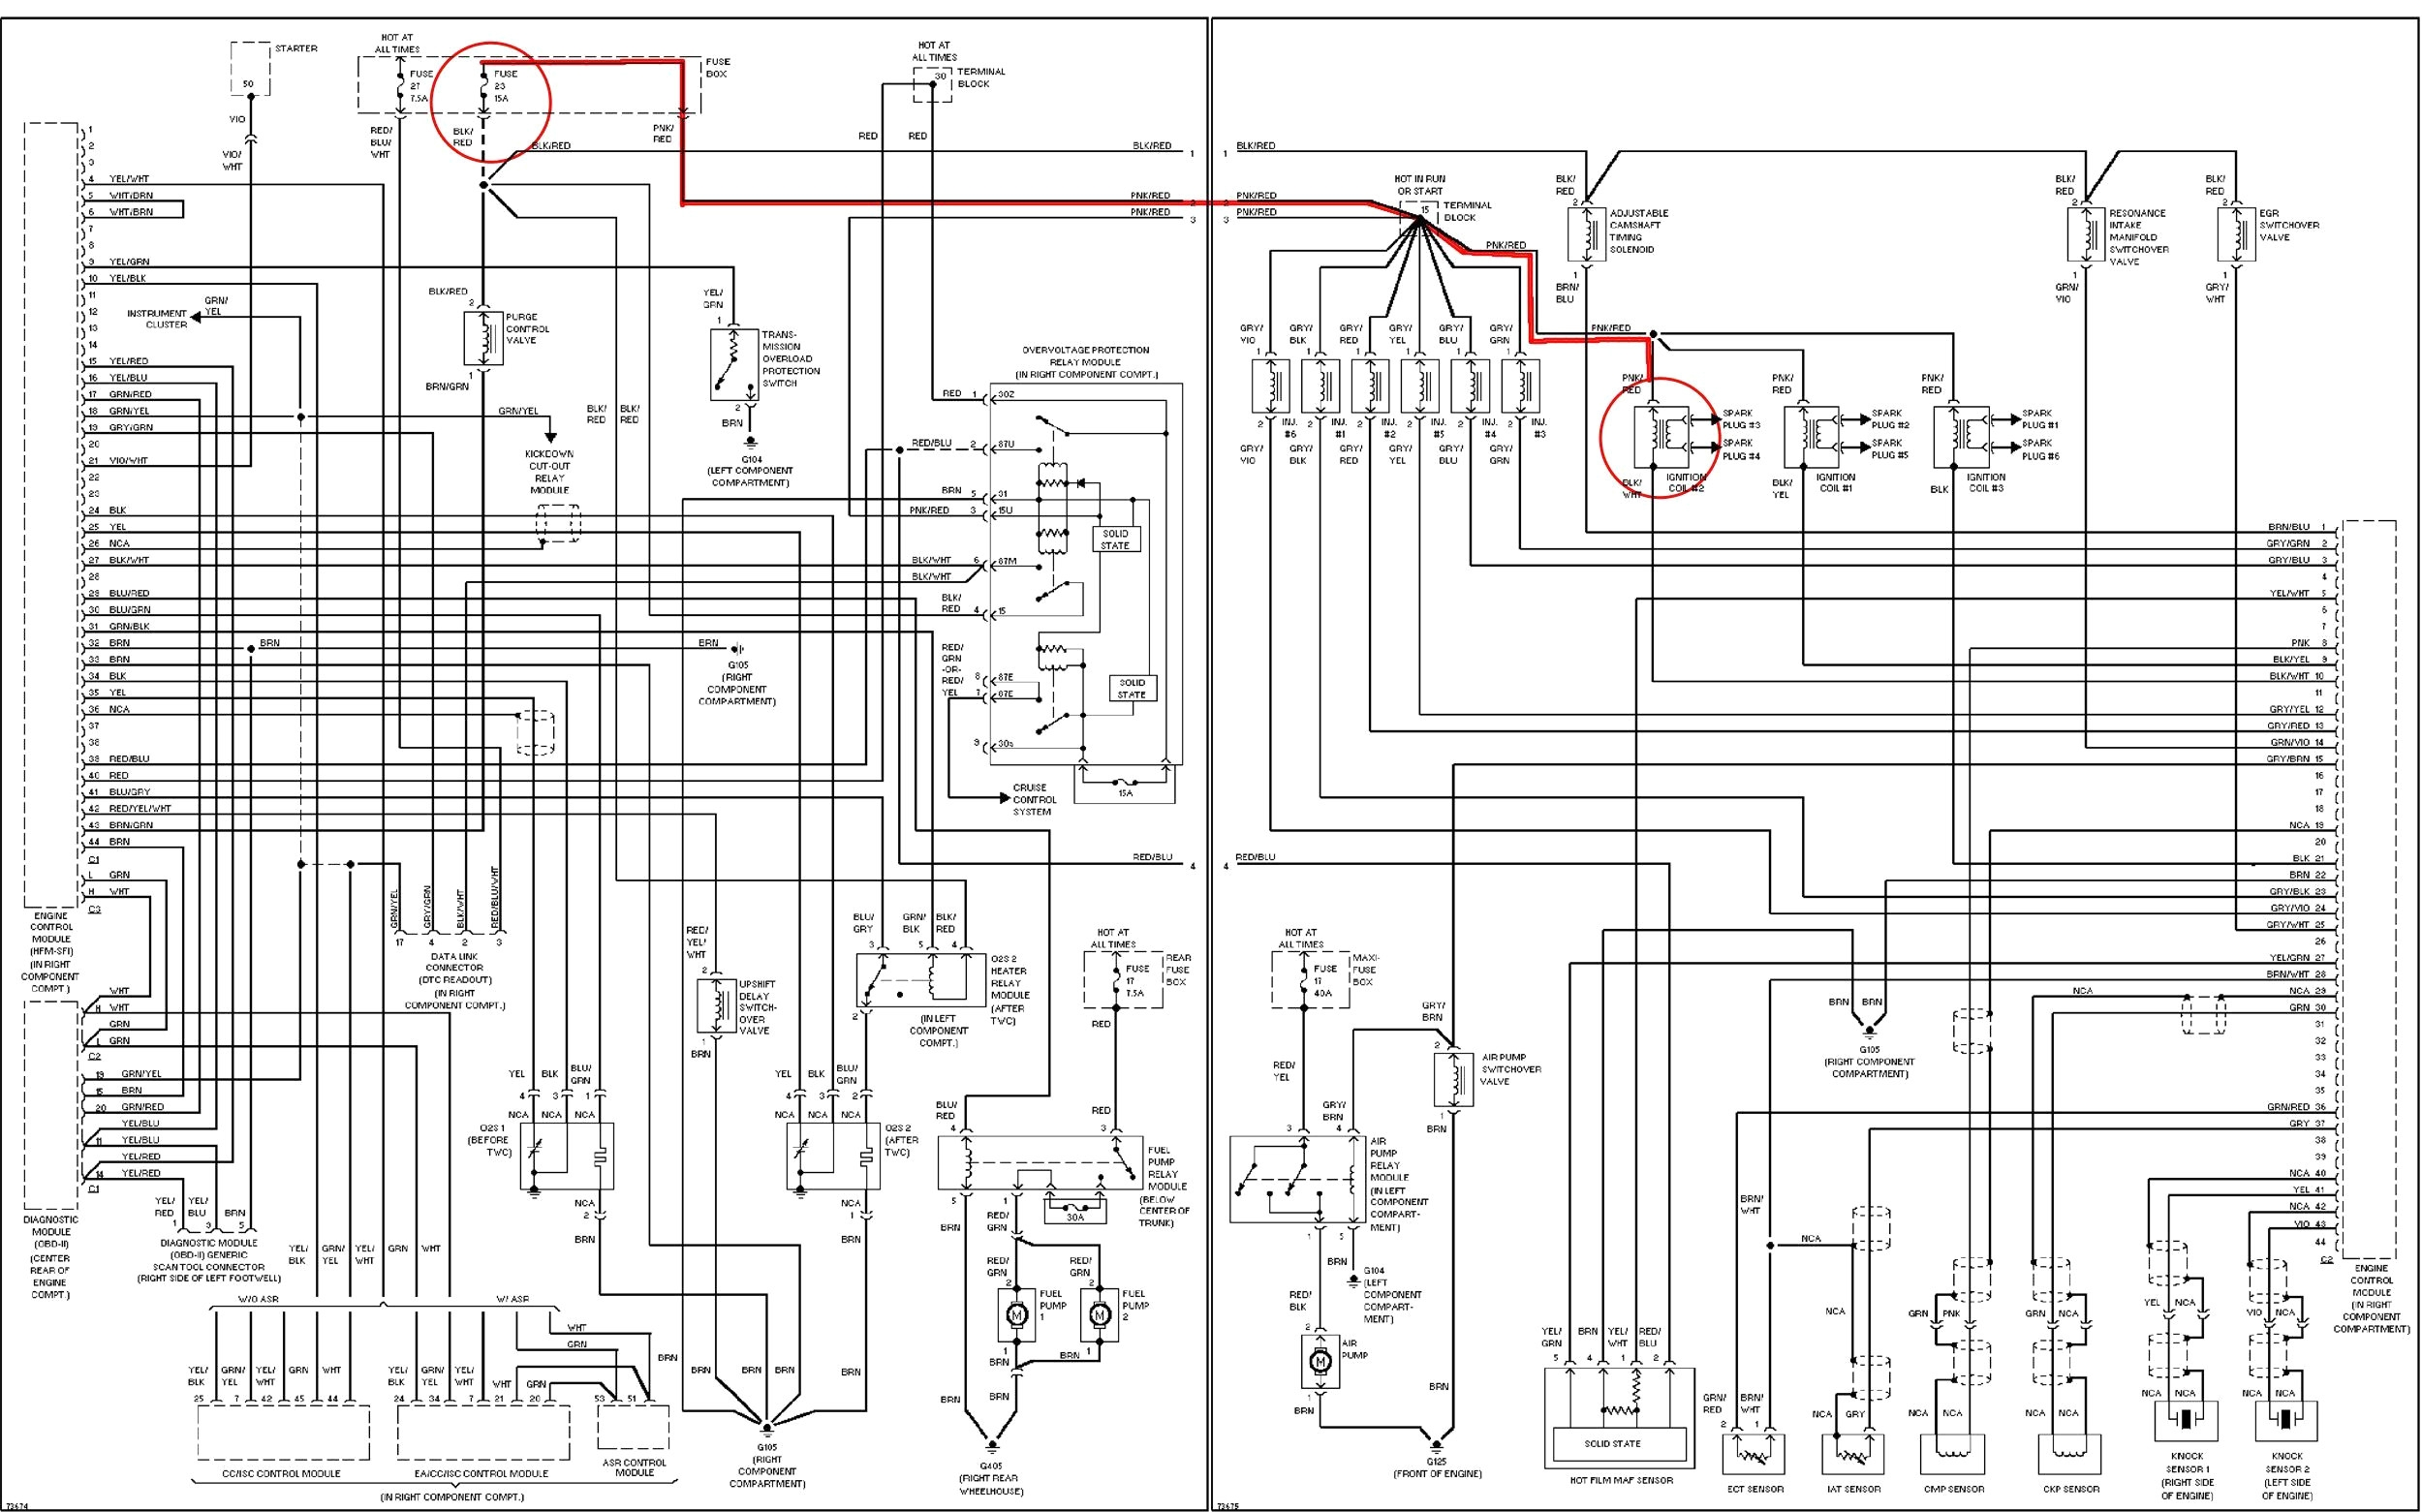 2013 Mb Sprinter Wiring Diagram. sprinter wiring diagrams